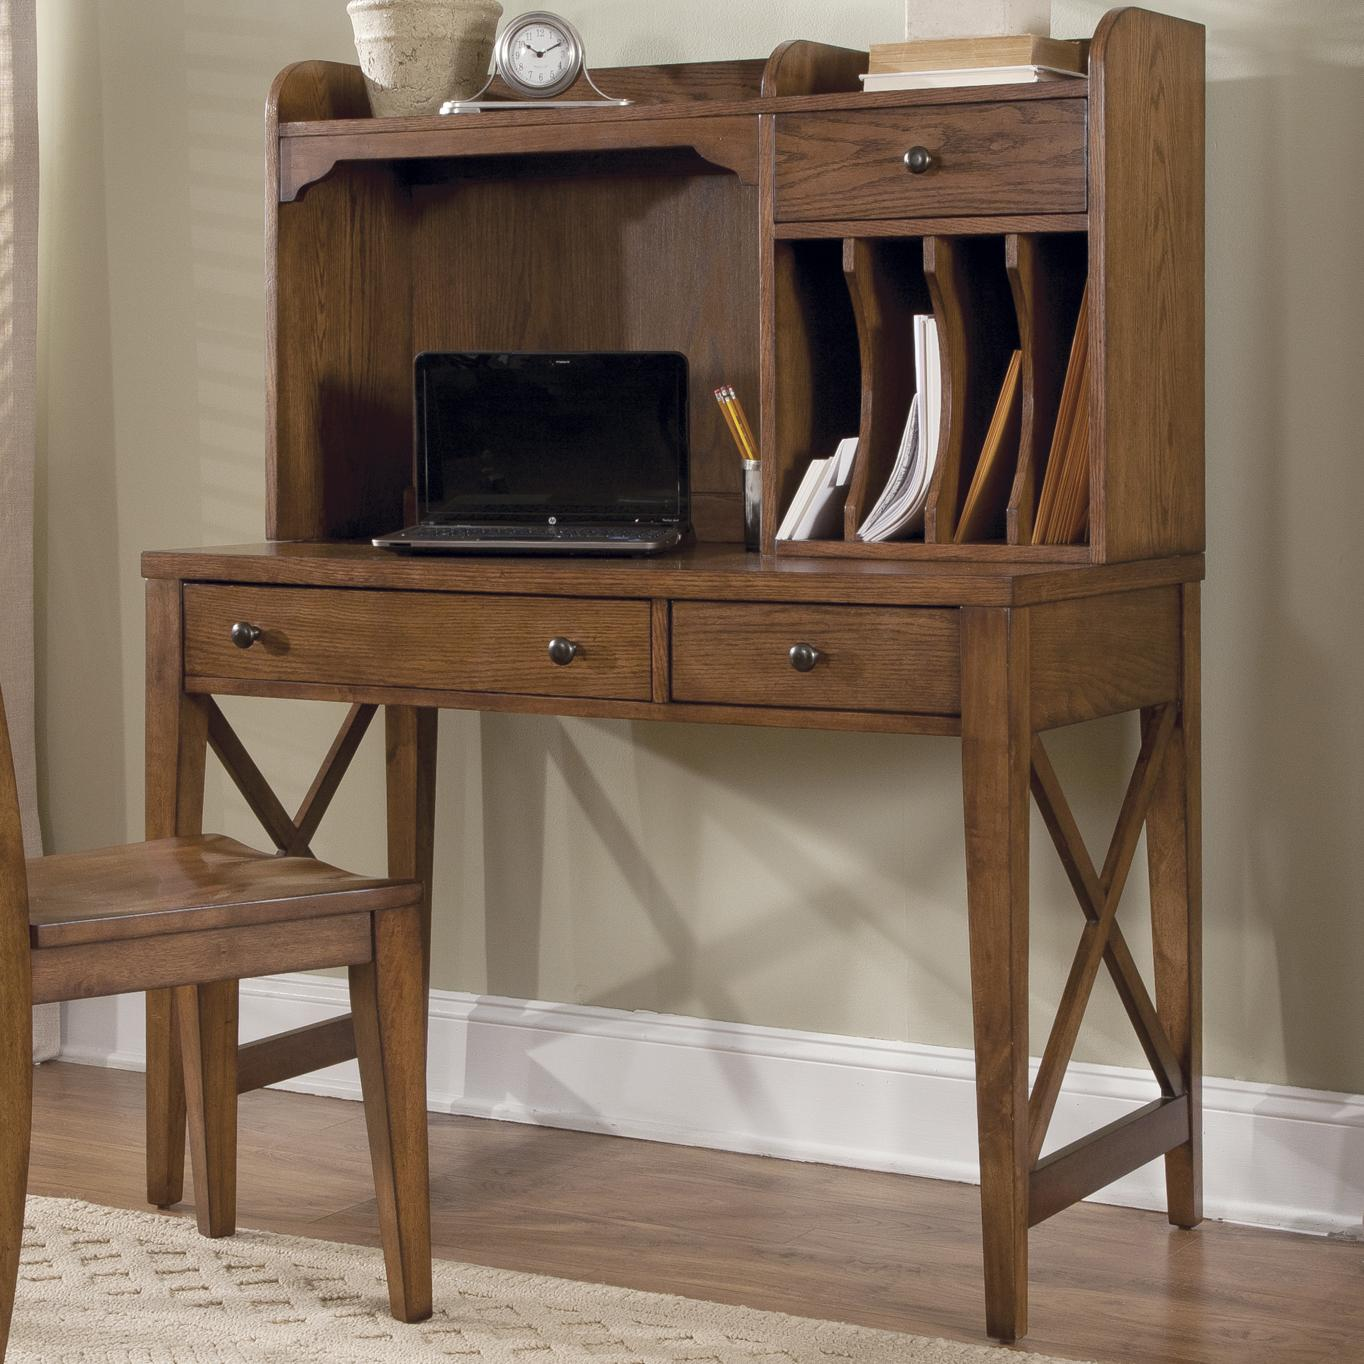 #956A36 Writing Desk With Hutch By Liberty Furniture Wolf And Gardiner Wolf  with 1364x1364 px of Best Writing Desk And Hutch 13641364 image @ avoidforclosure.info